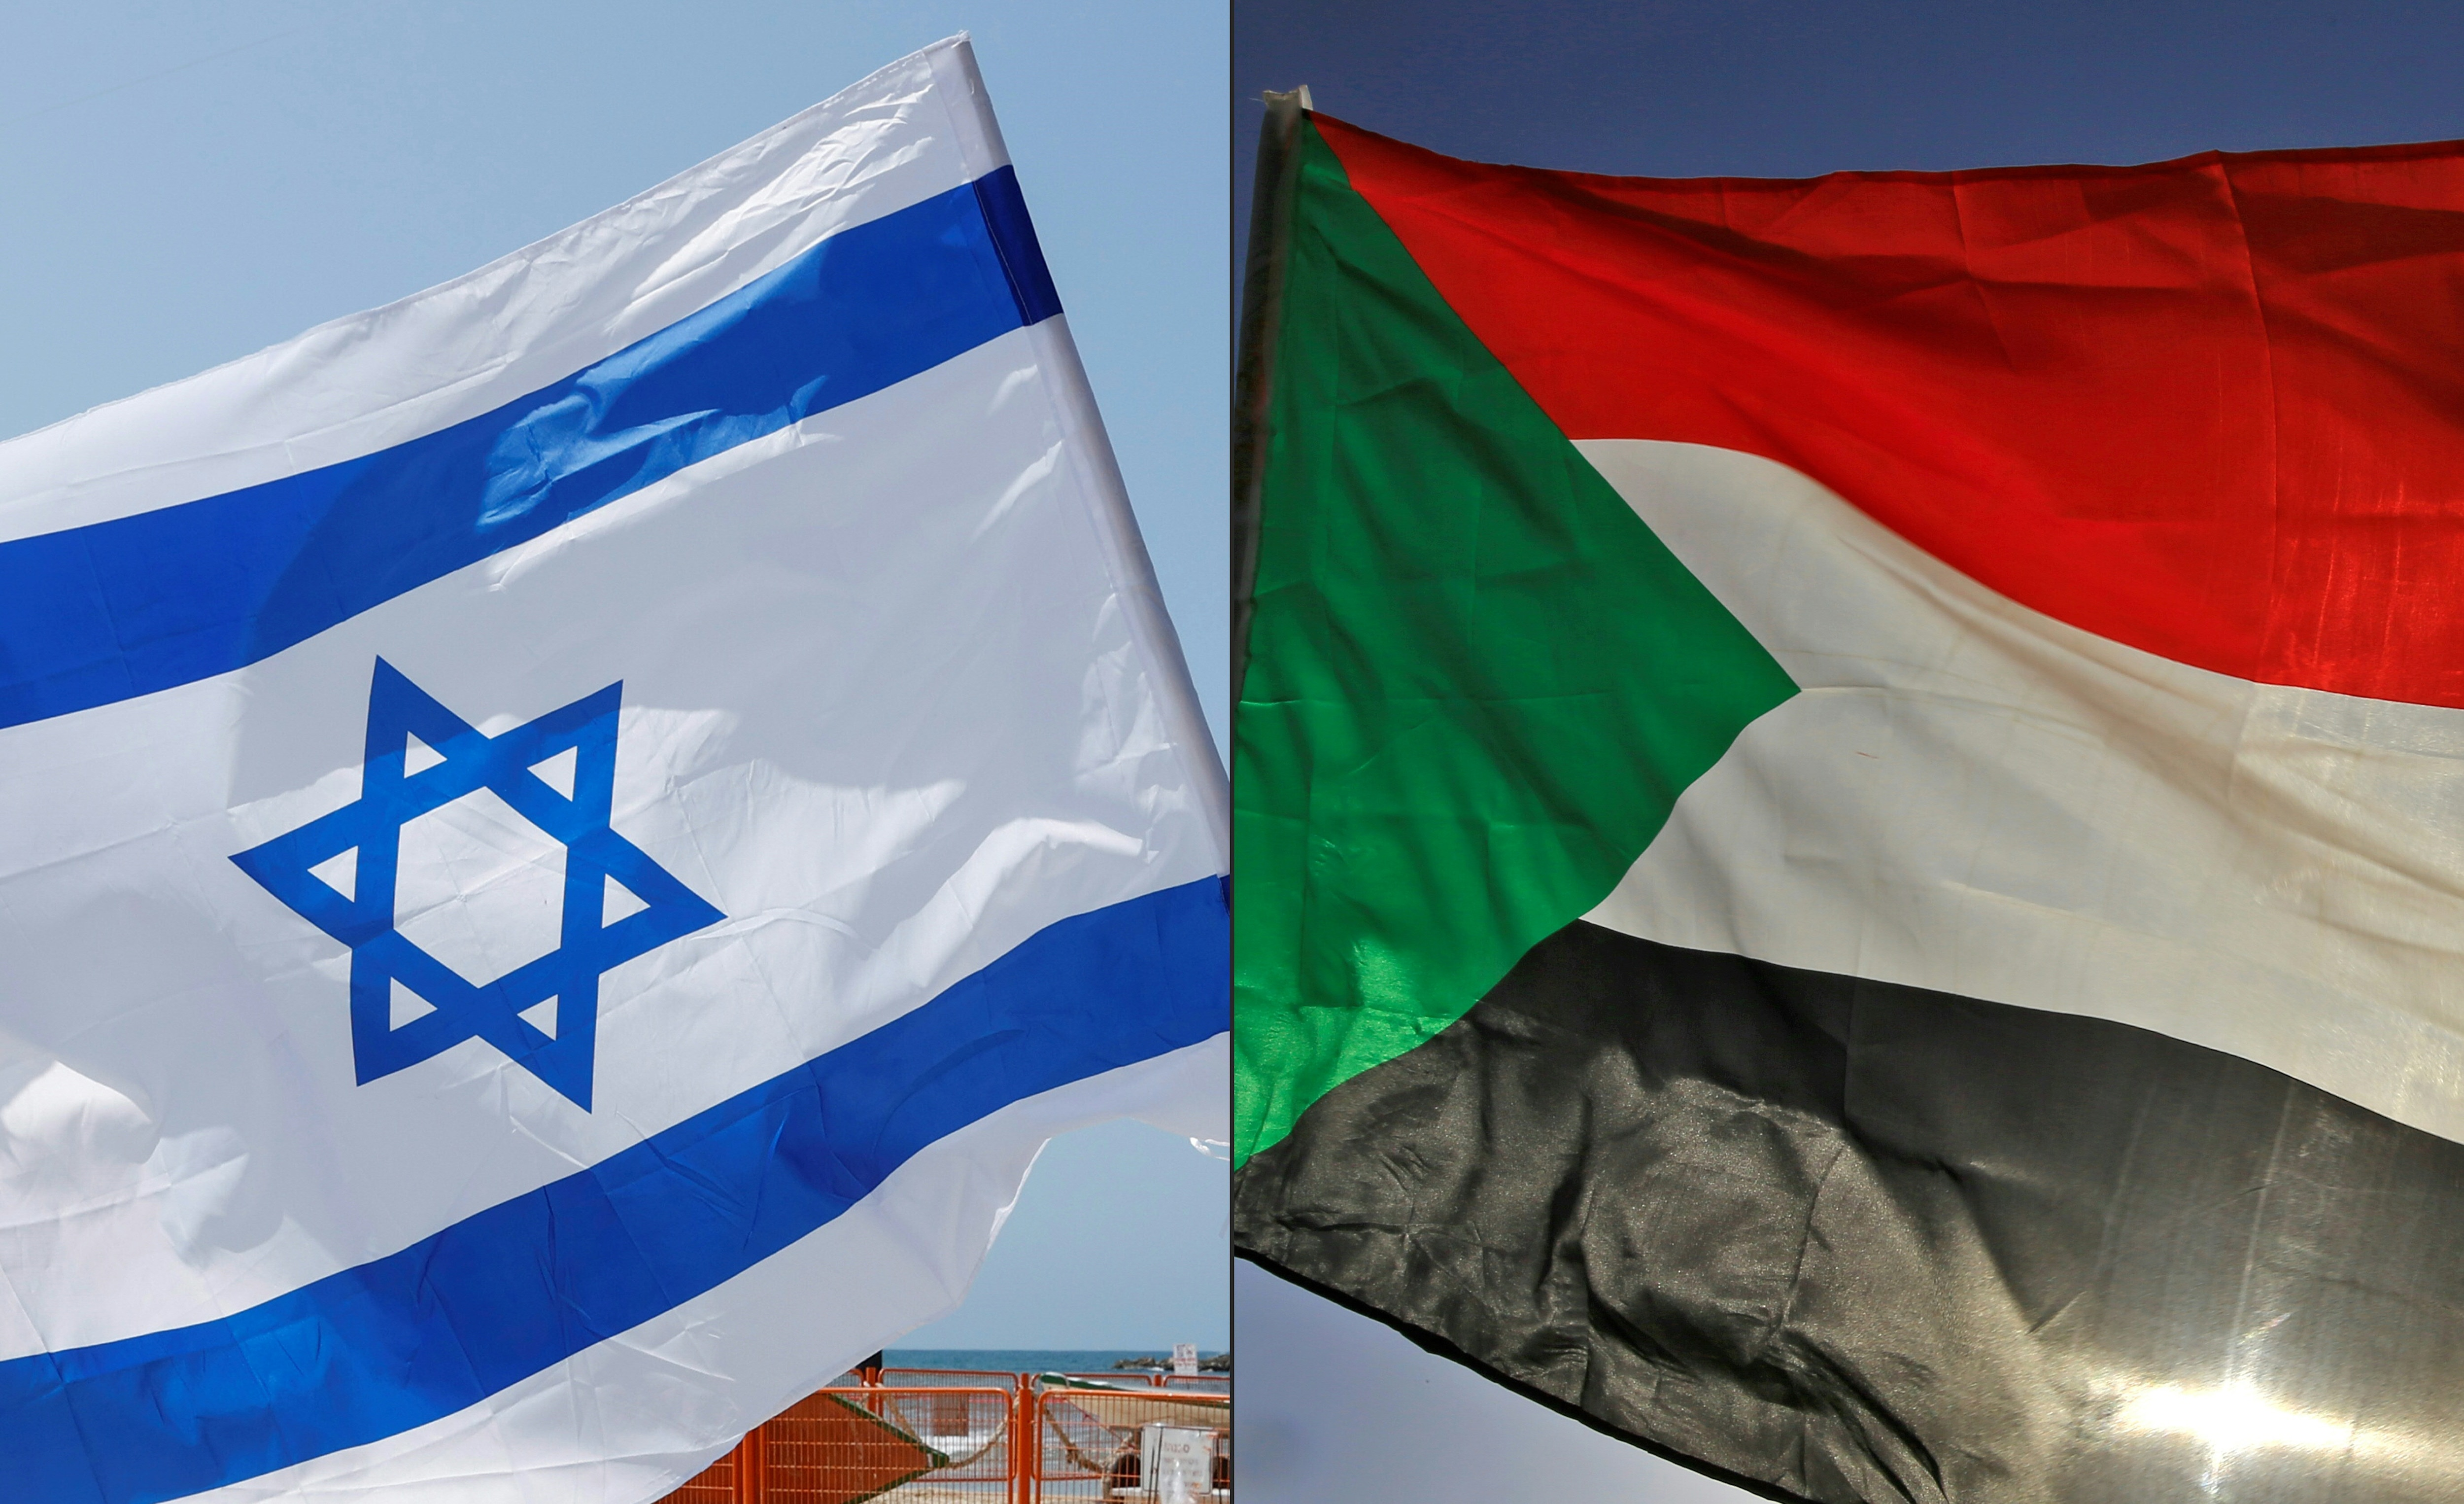 Sudan: Normalization With Israel Was US Condition But Will Be Beneficial